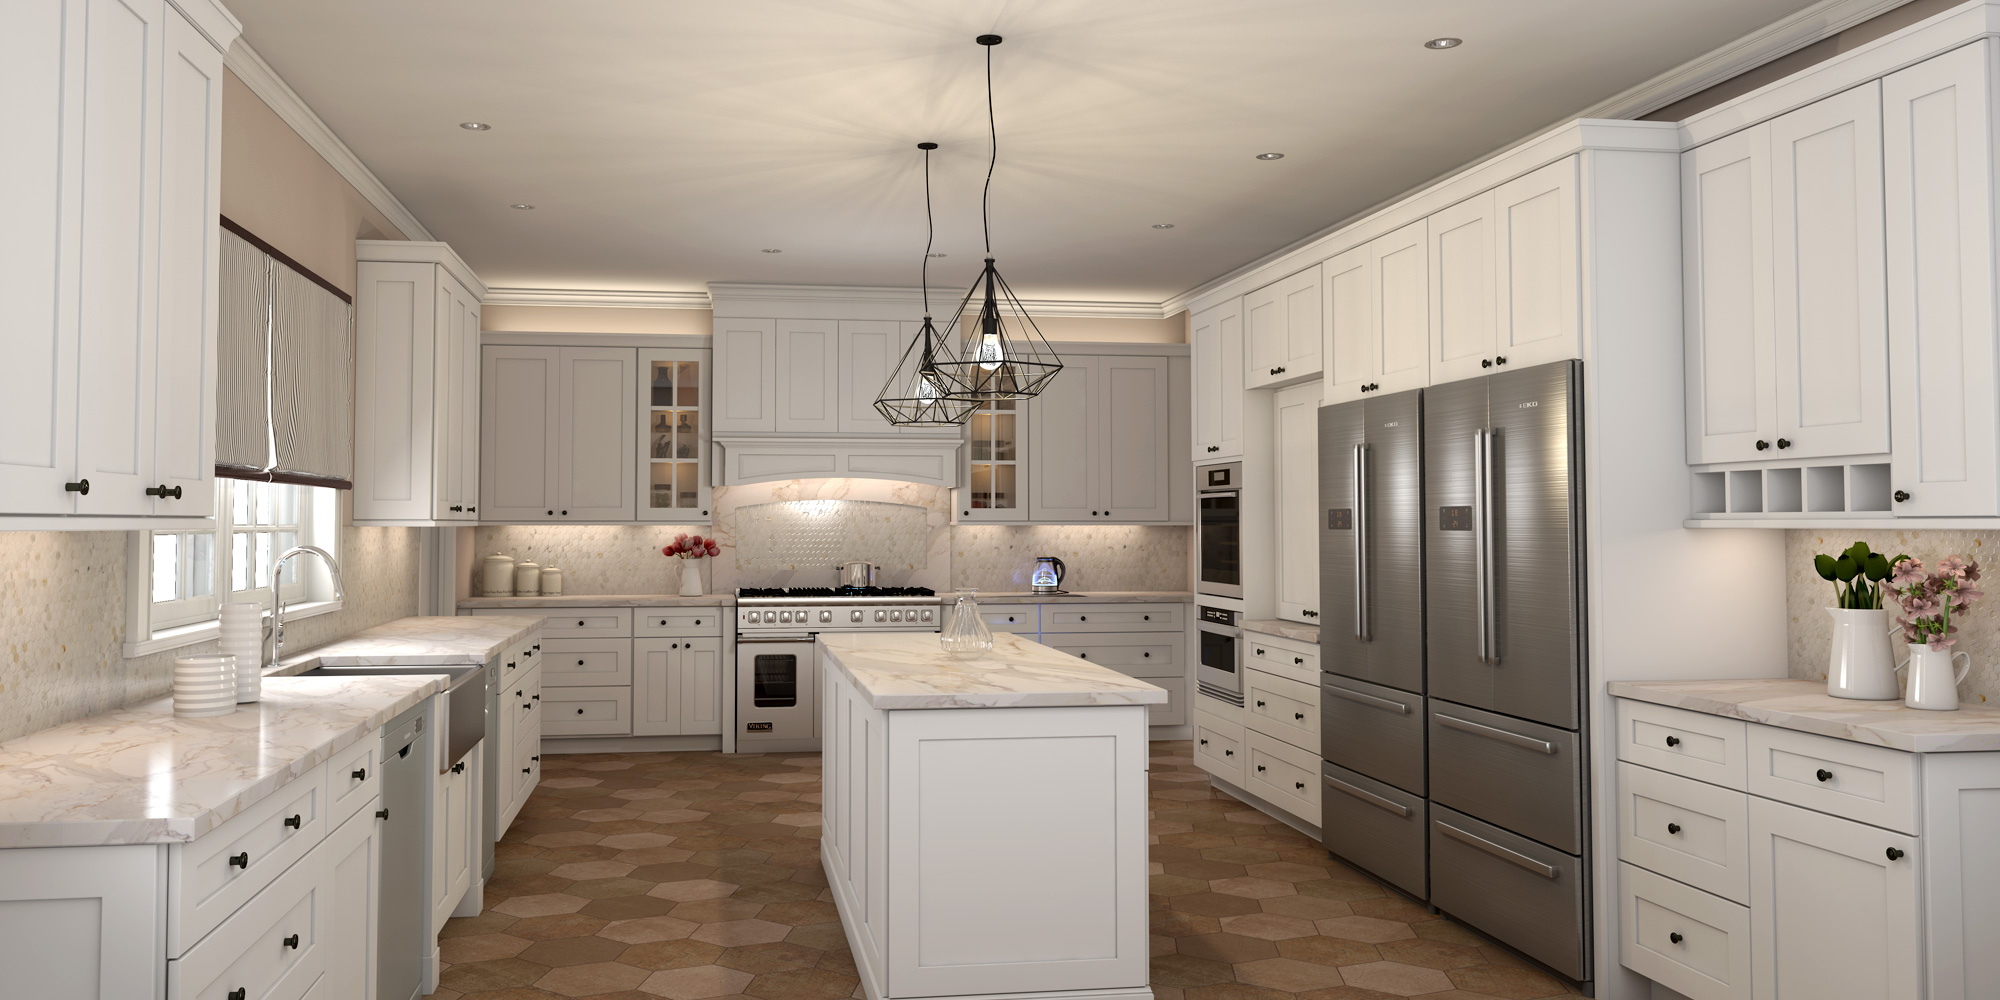 Kitchen interior Design Brooklyn